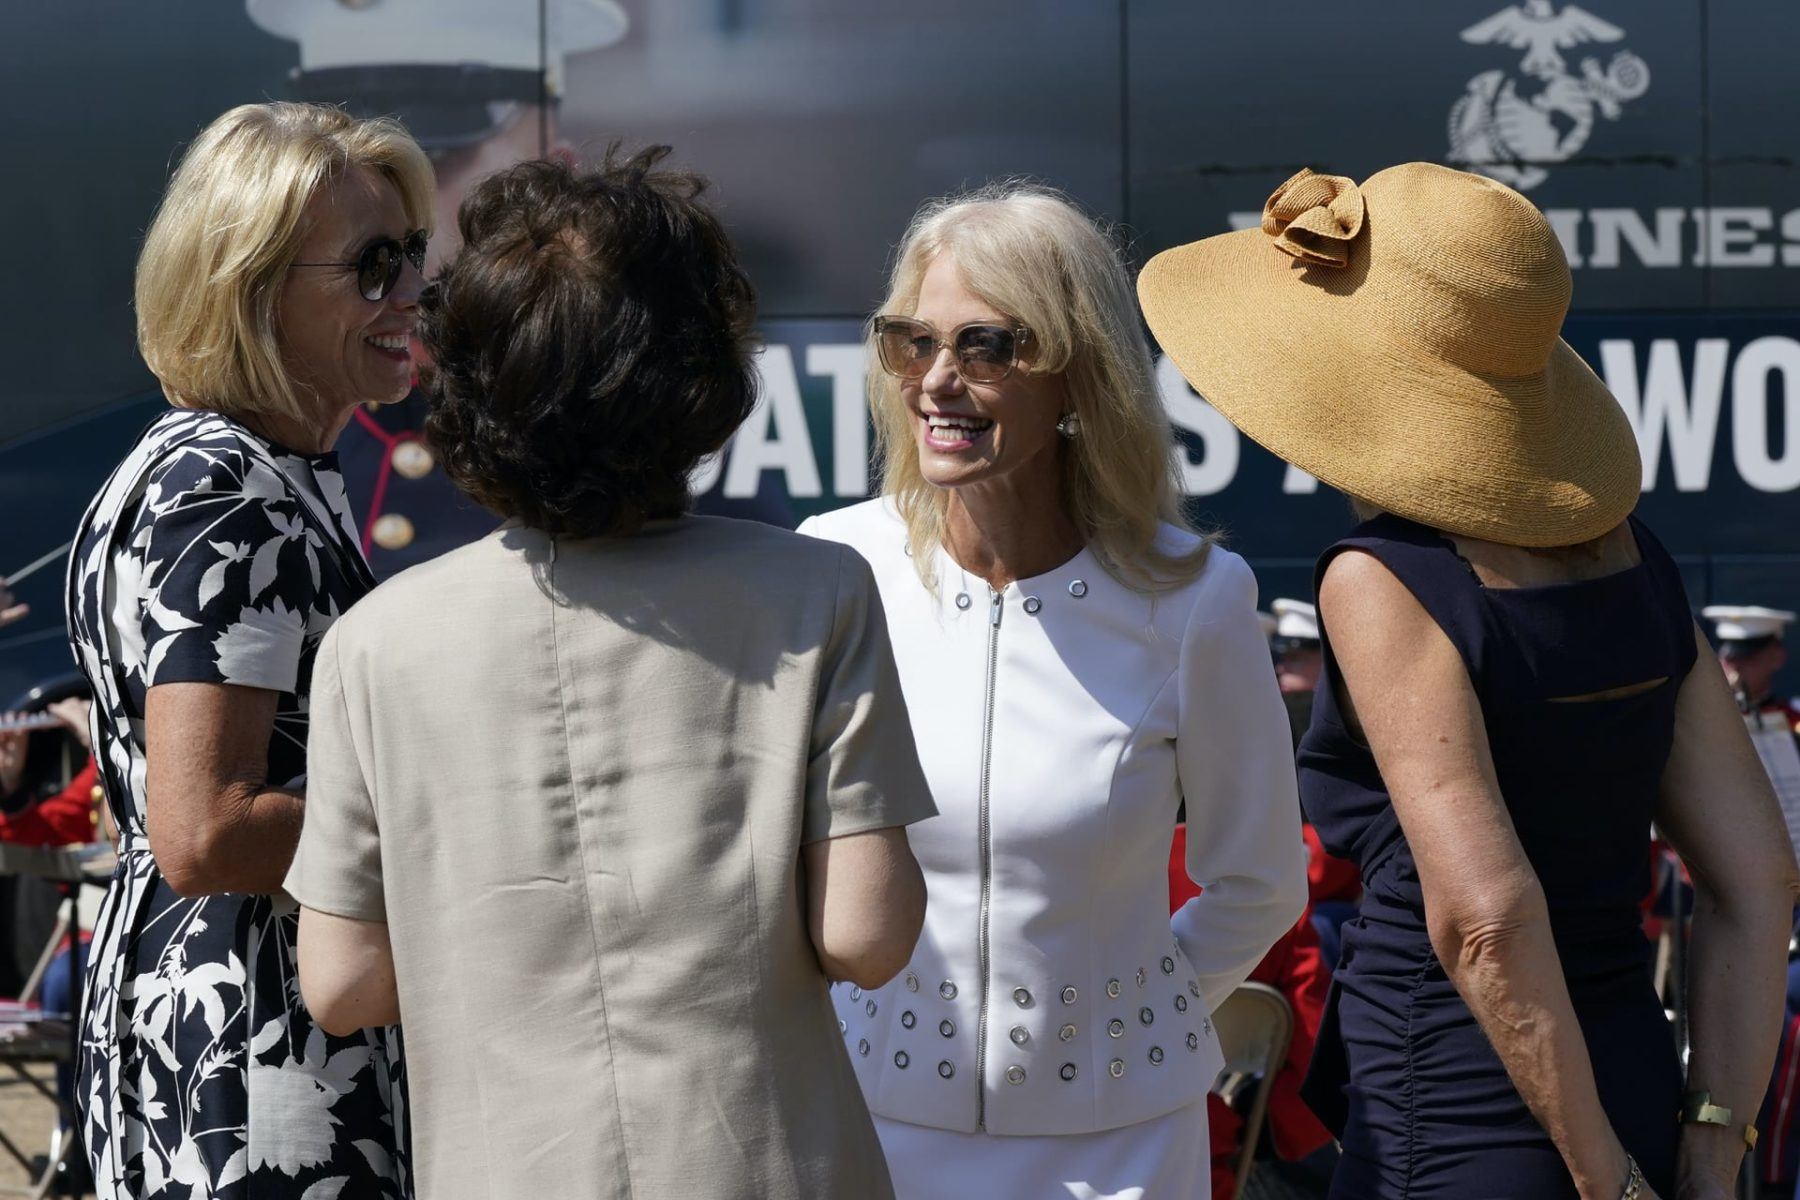 Kellyanne Conway, one of President Donald Trump's most influential and longest serving advisers, speaks with Education Secretary Betsy Devos, left, and Transportation Secretary Elaine Chao, second from left, at an event with First Lady Melania Trump, in front of the White House in Washington, Monday, Aug. 24, 2020. Conway announced Sunday that she would be leaving the White House at the end of the month, citing a need to spend time with her four children. (AP Photo/J. Scott Applewhite)